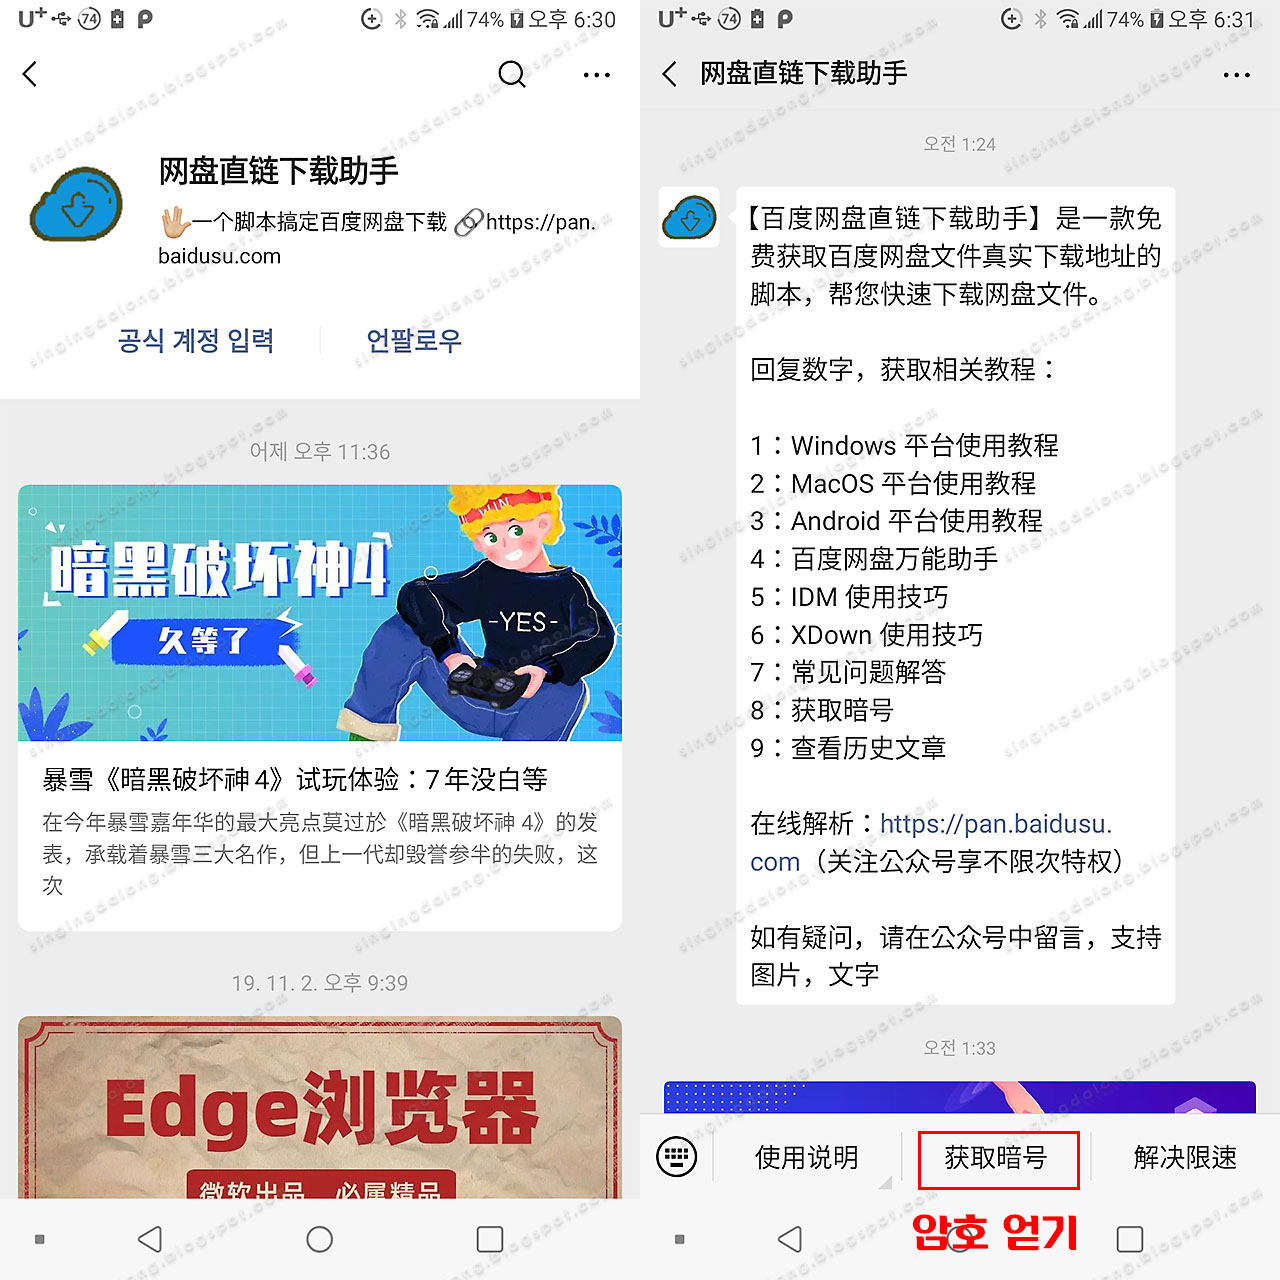 About-Baidu-network-disk-direct-chain-download-assistant